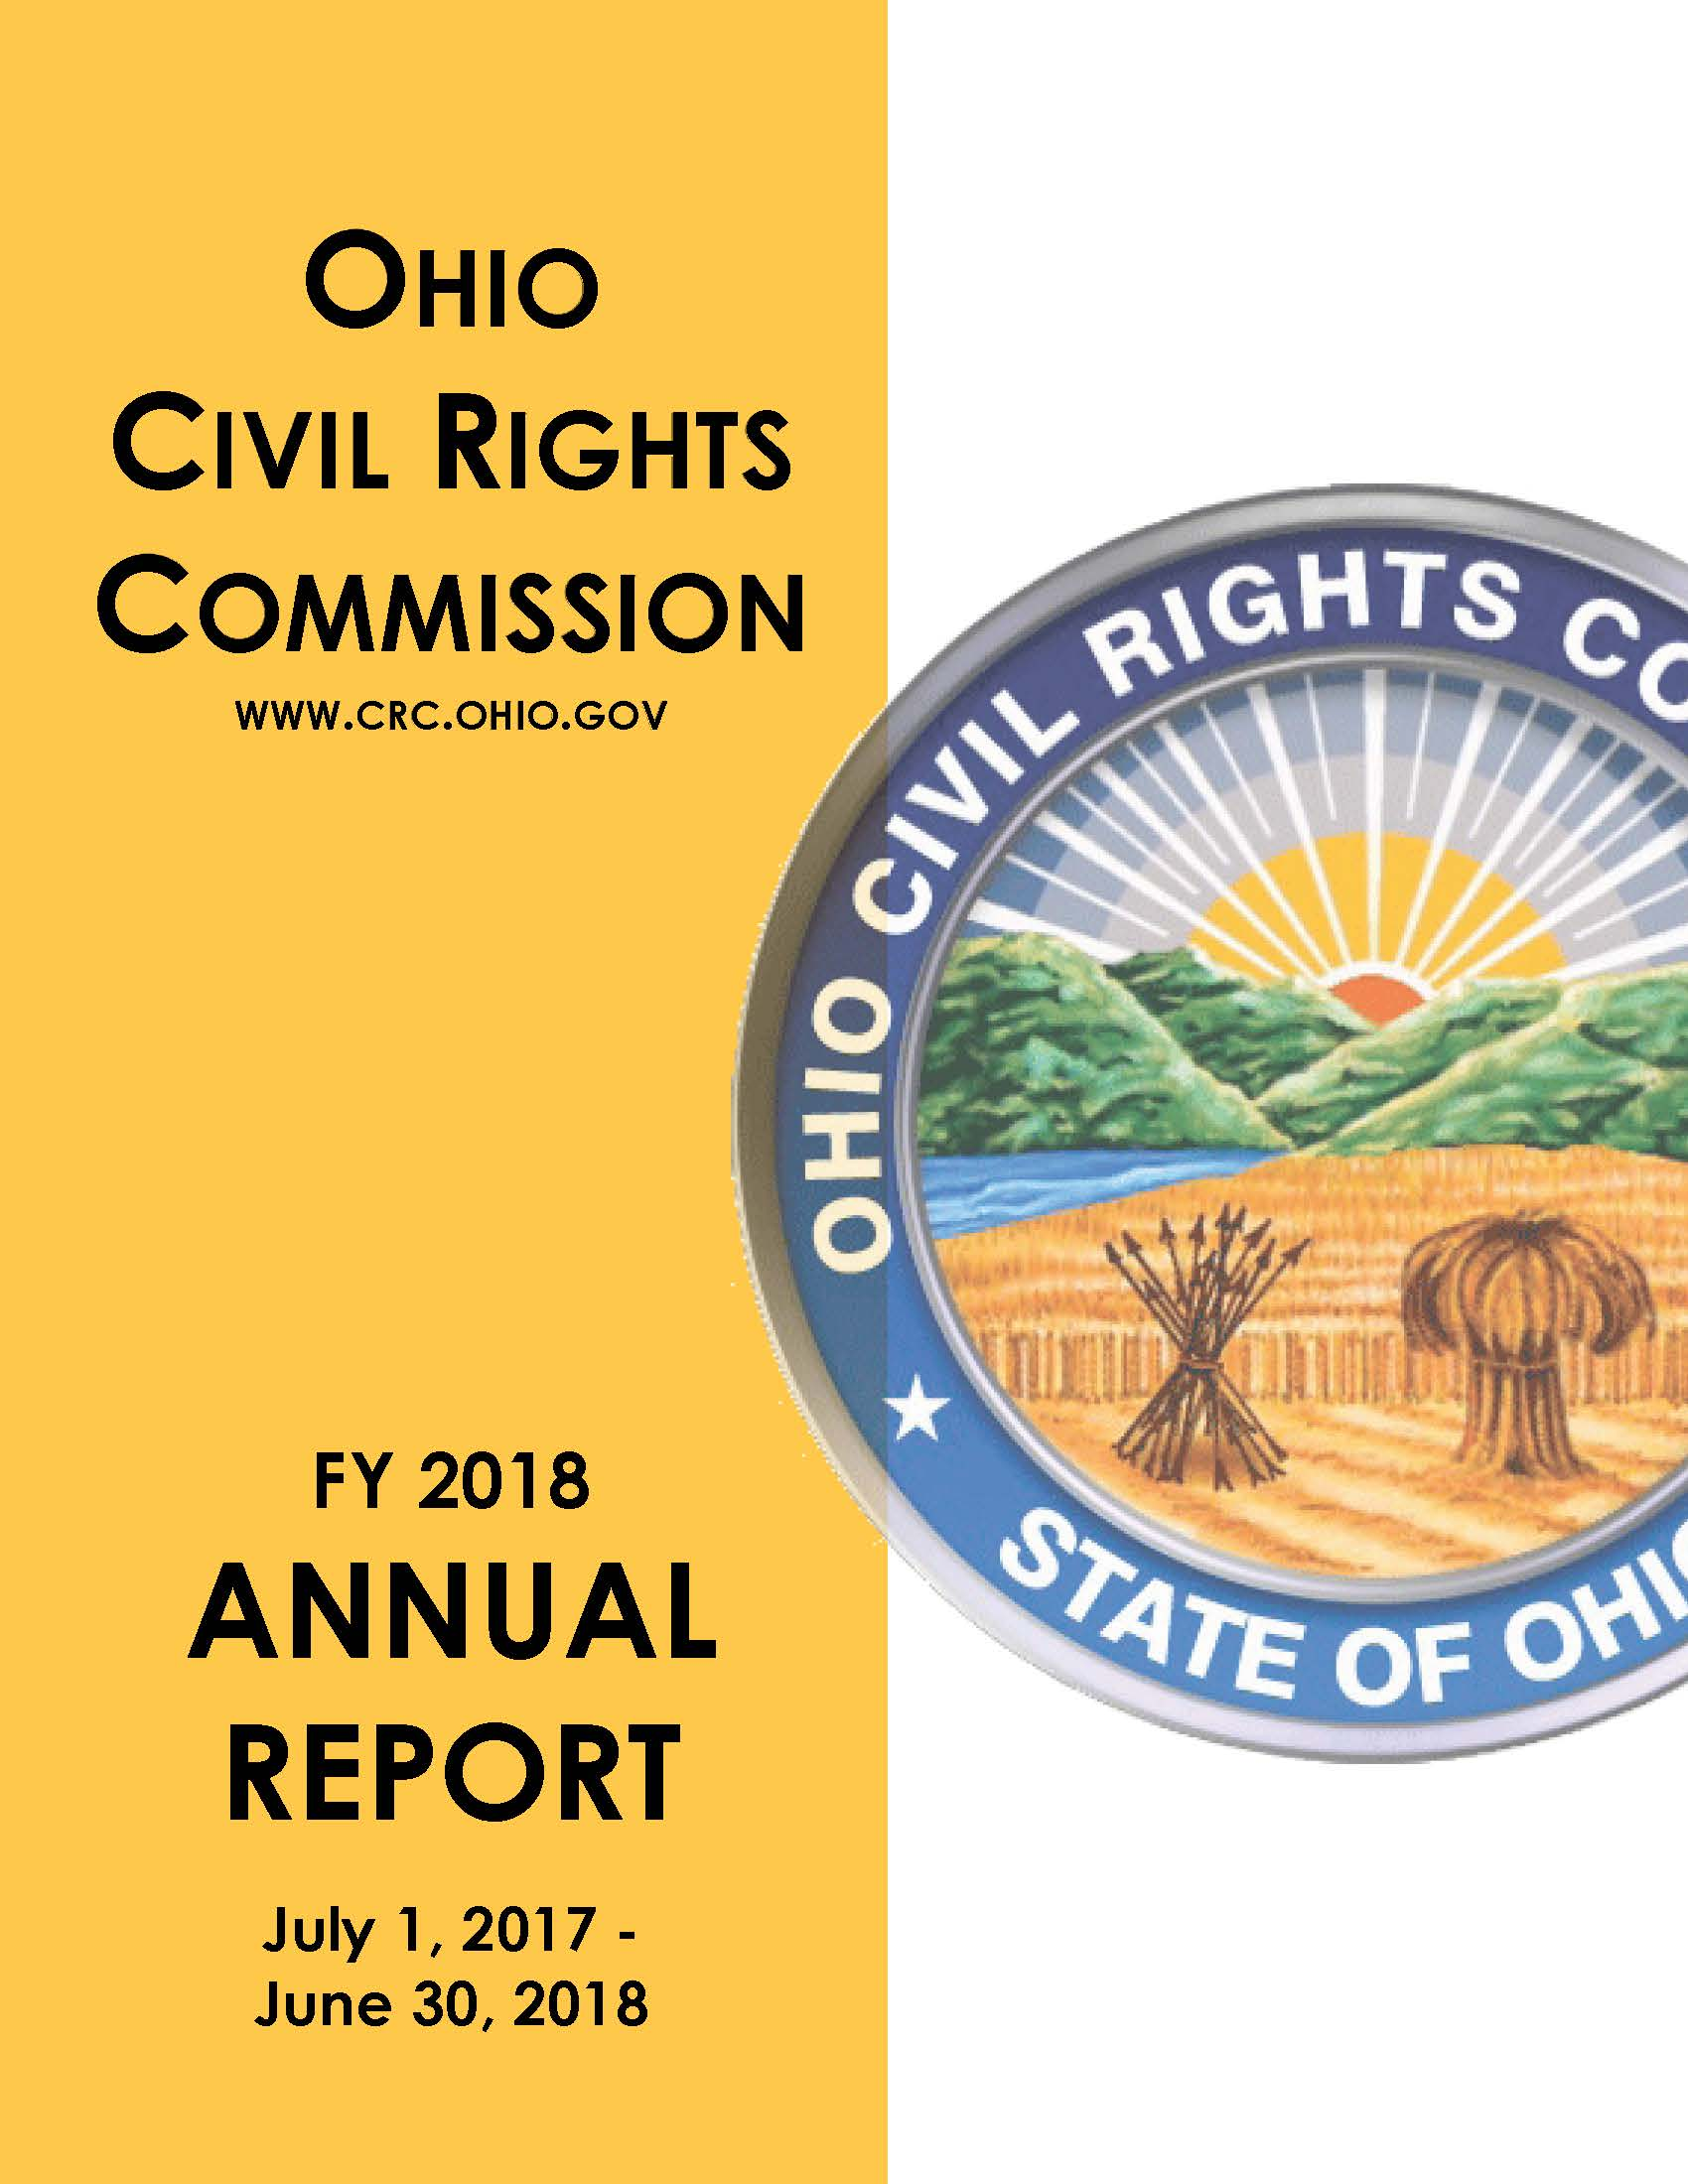 image of the the cover of the FY 2018 Annual Report